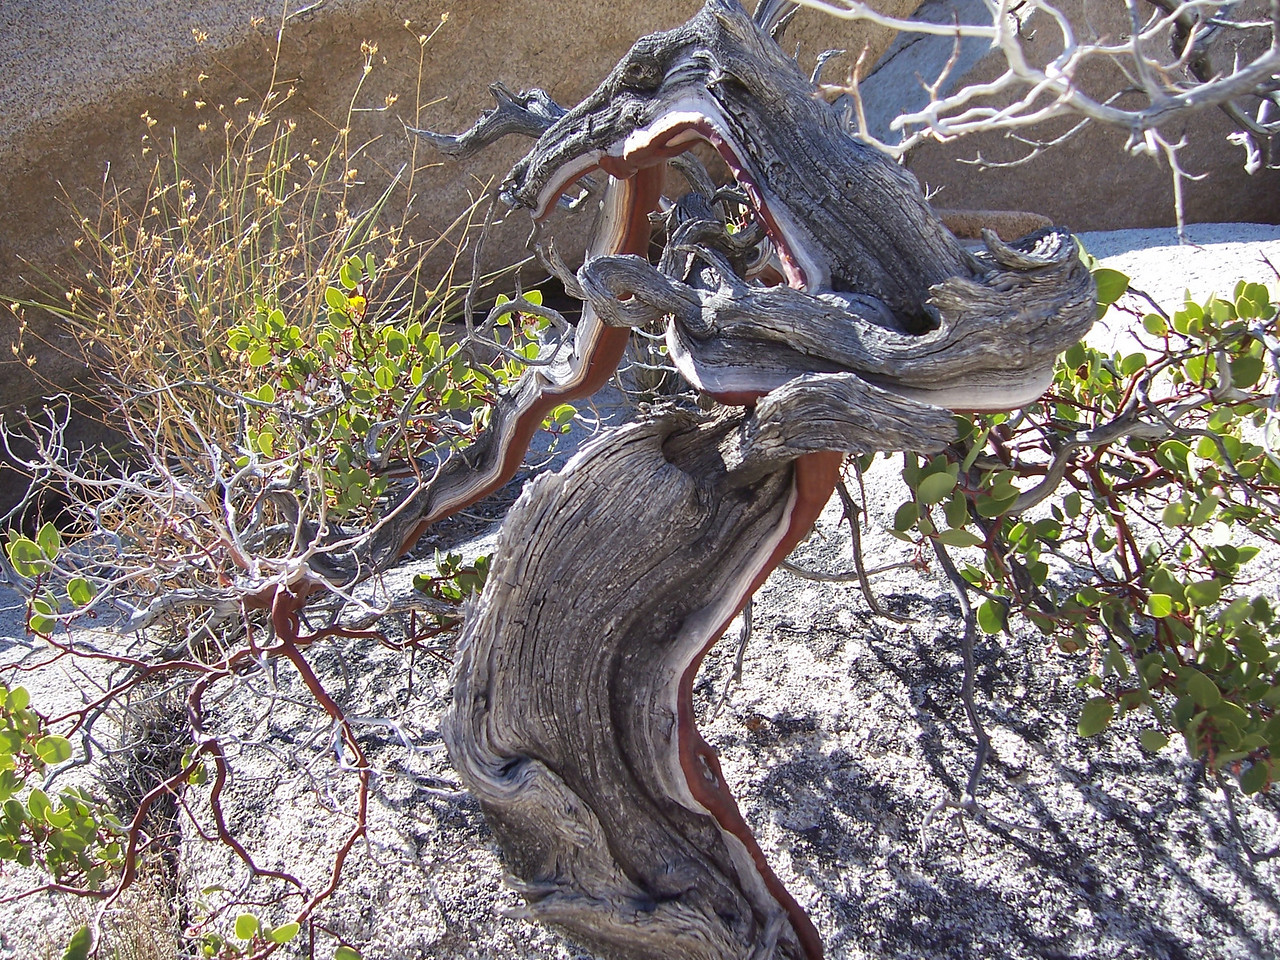 A really cool looking bush called Manzanita